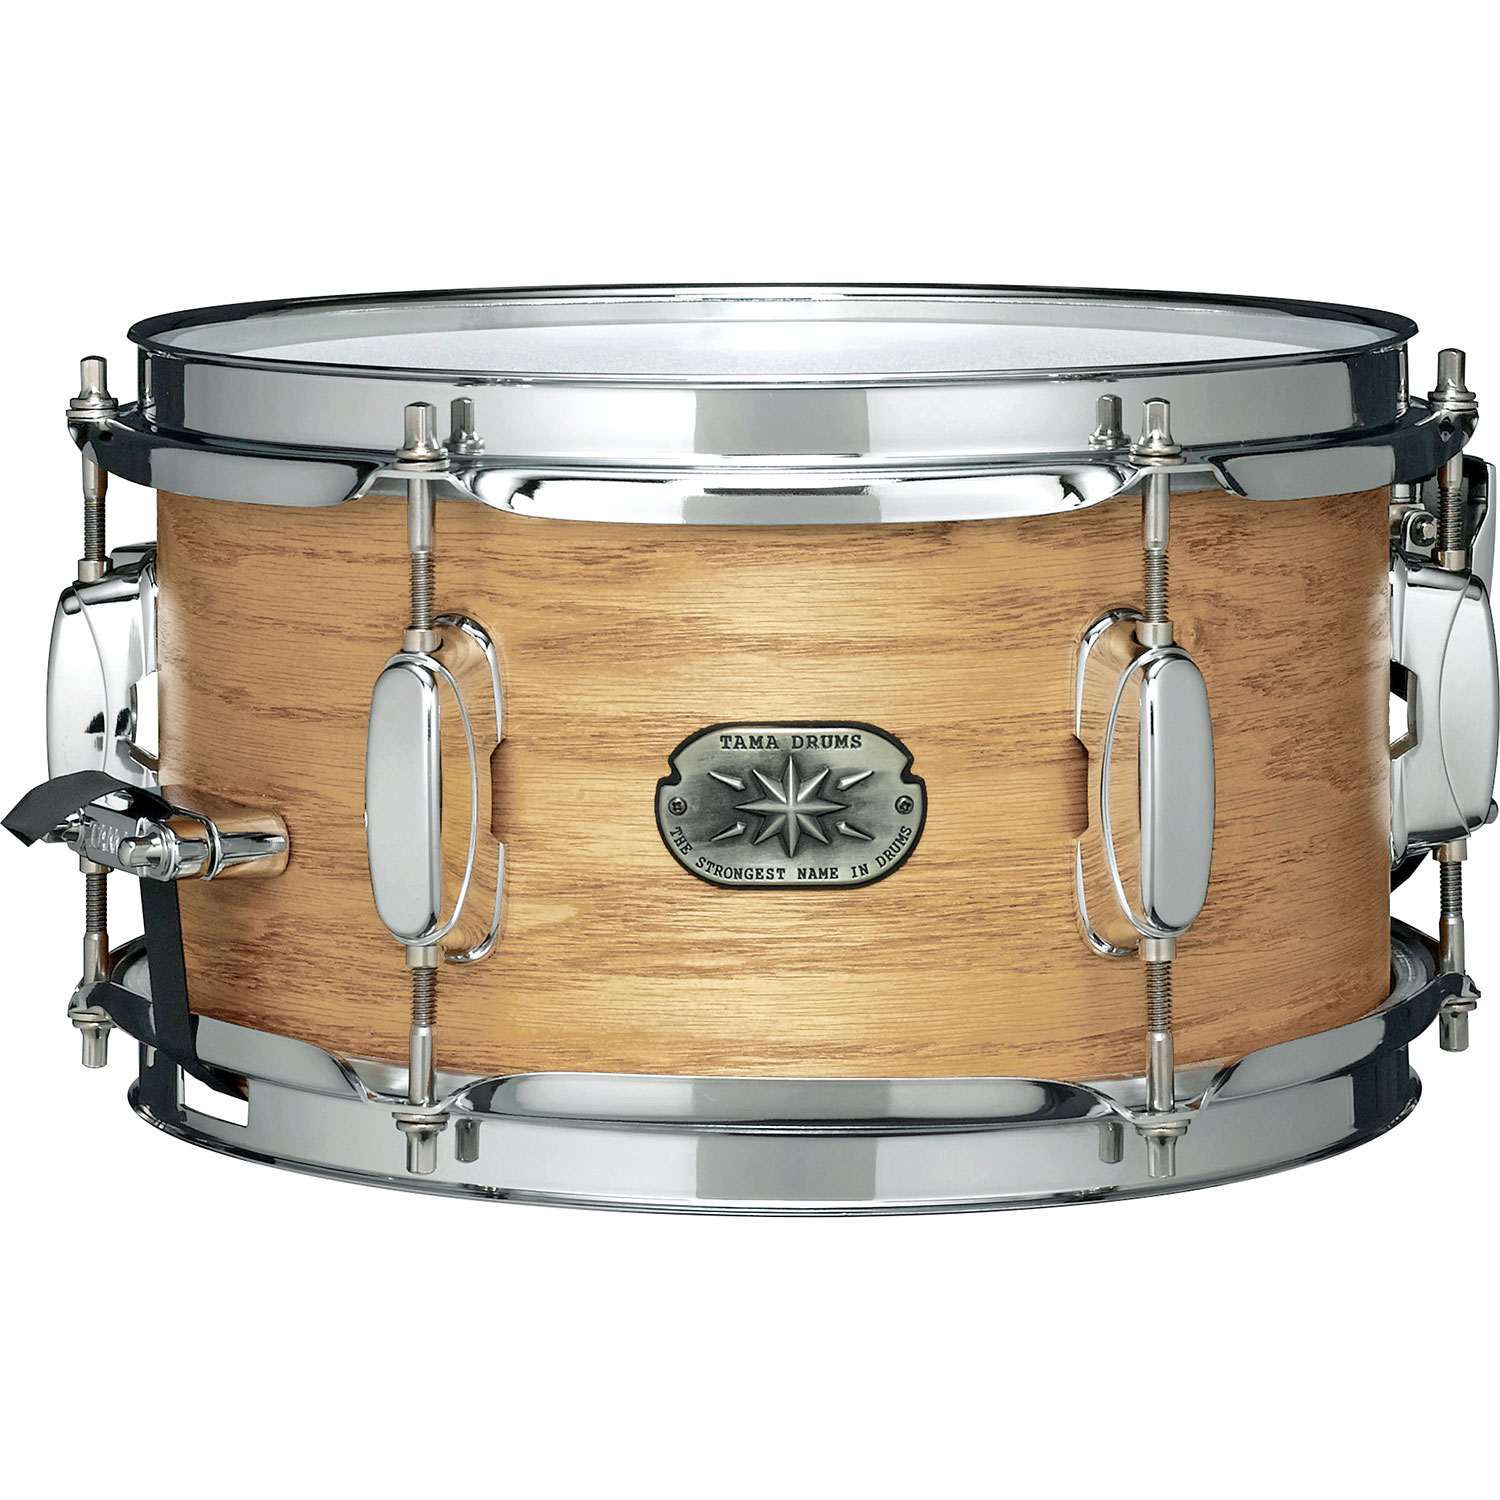 """Tama 5.5"""" x 10"""" Limited Edition Artwood Birch Snare Drum in Tamo Ash"""